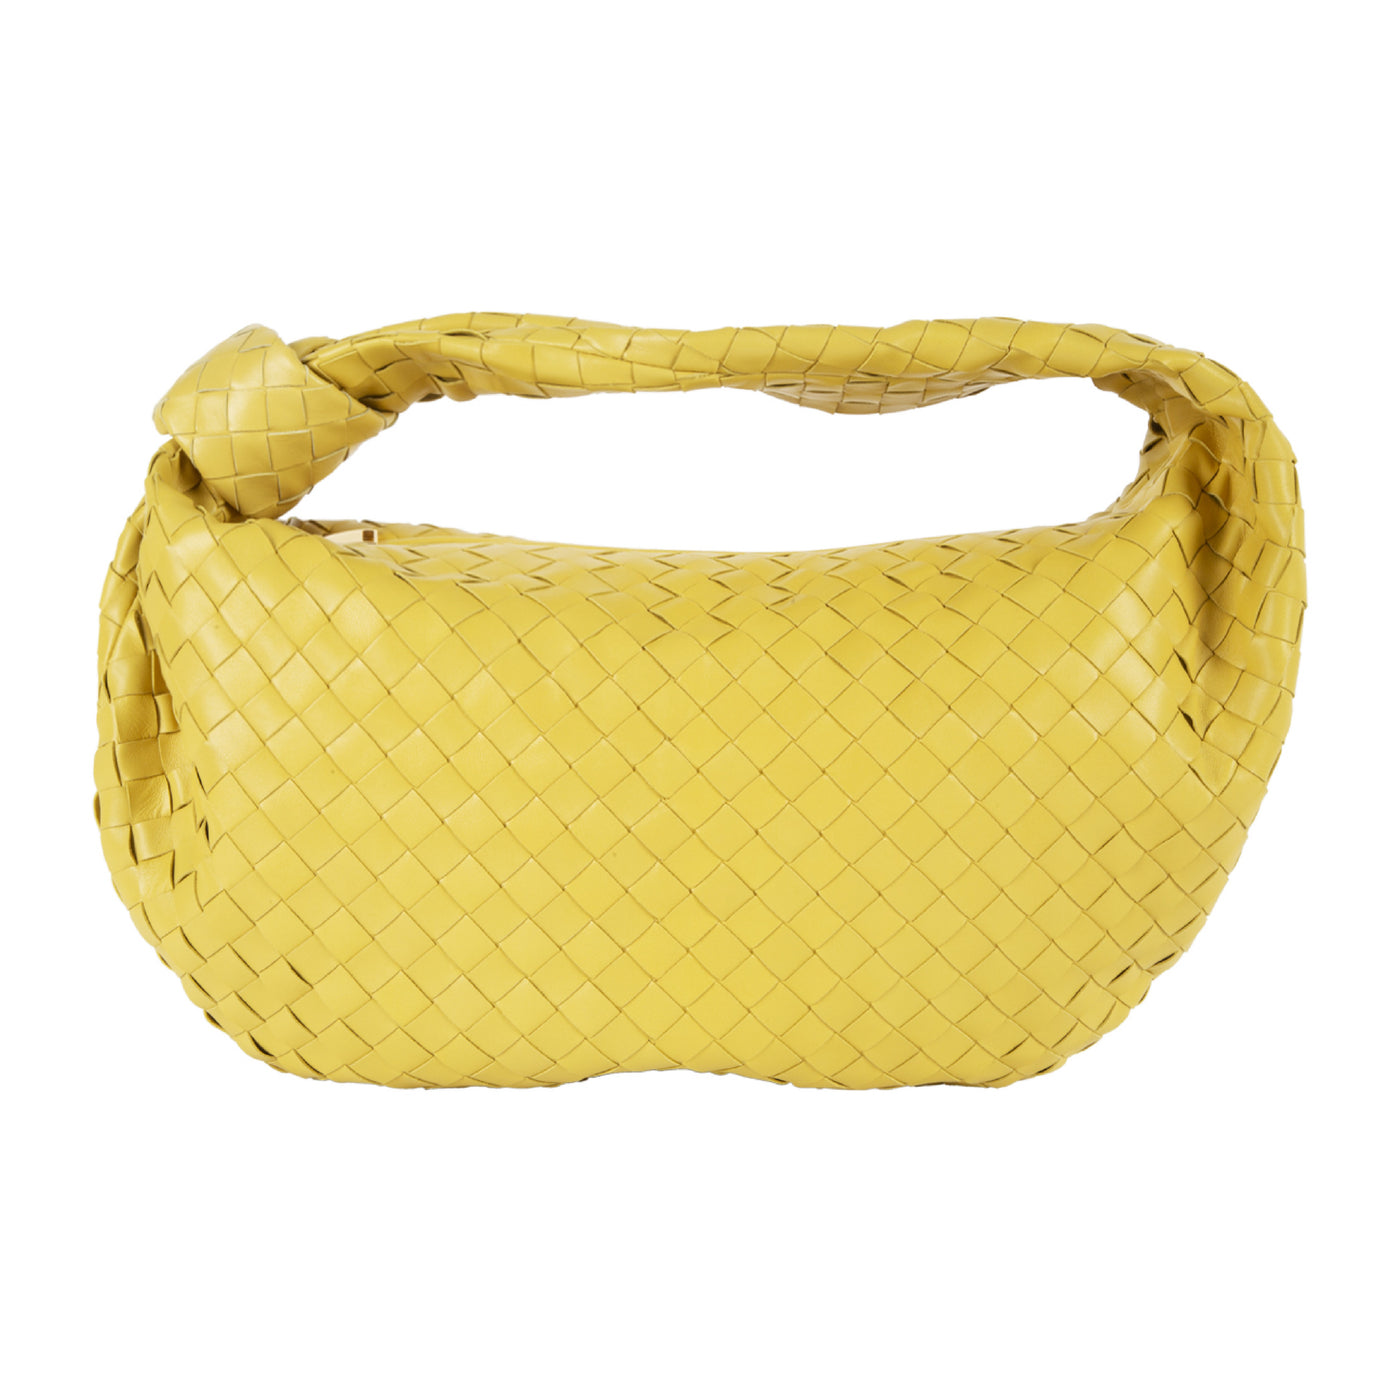 Load image into Gallery viewer, BOTTEGA VENETA BV JODIE YELLOW